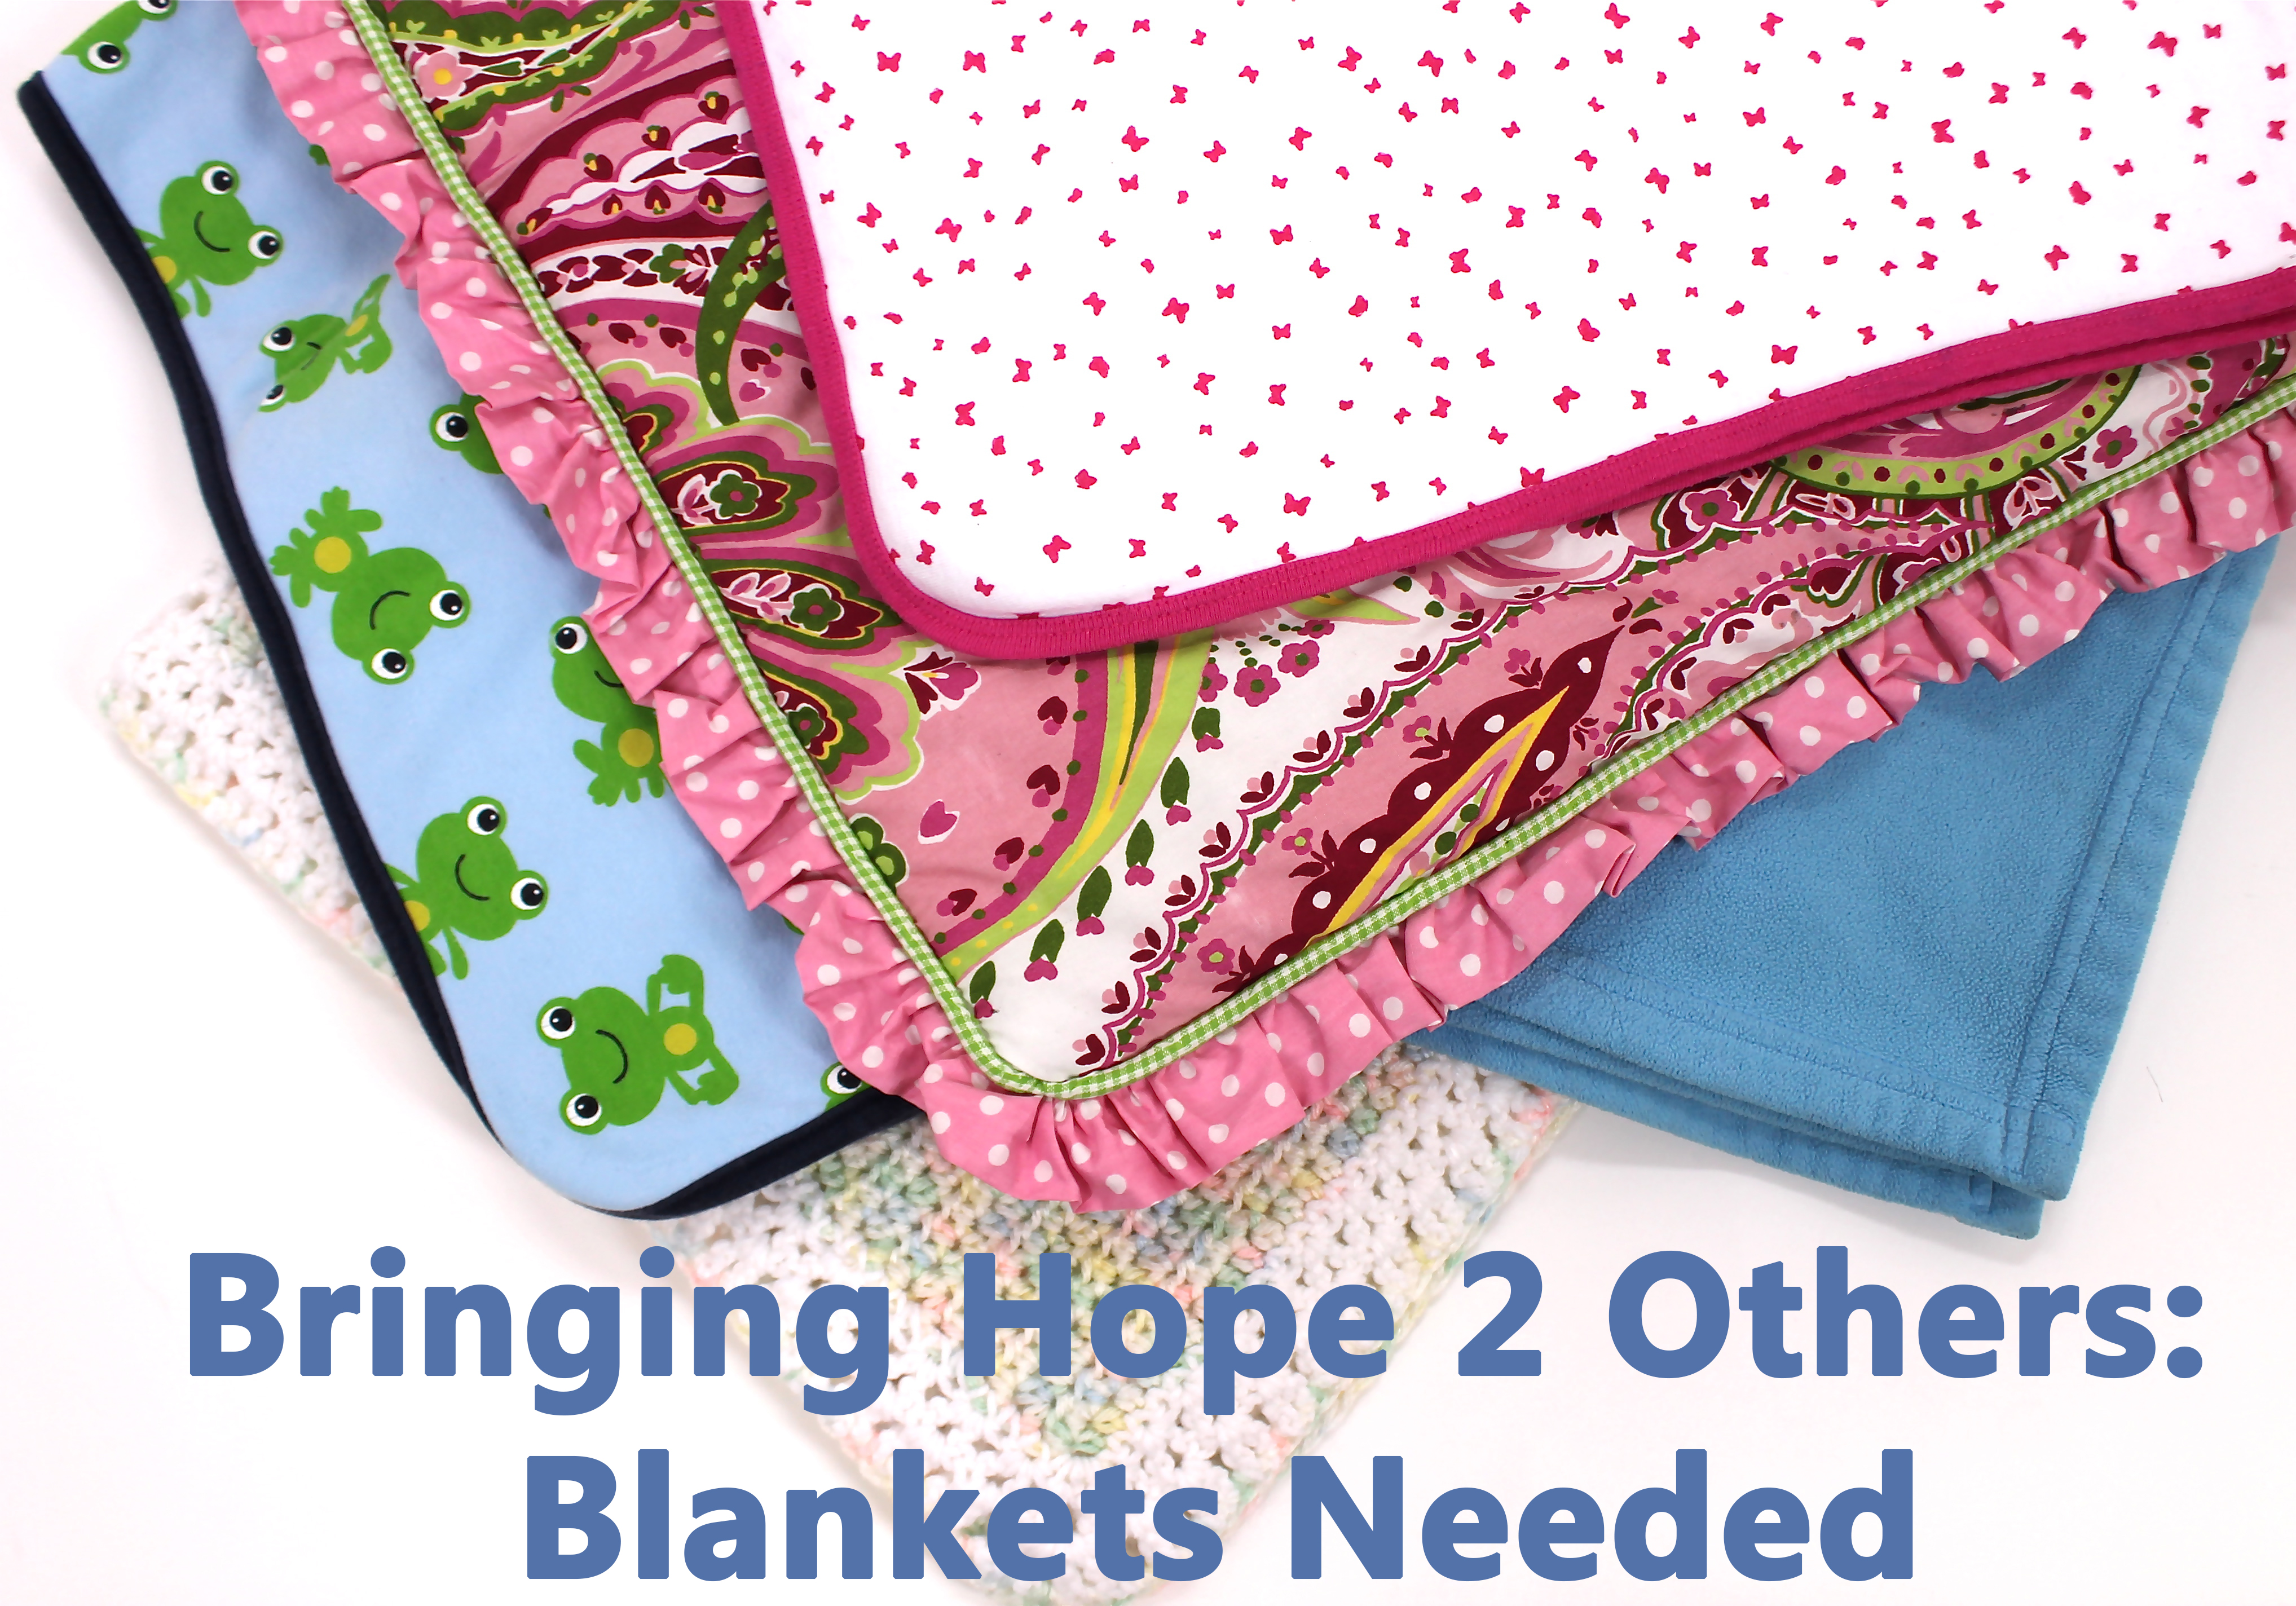 Hope 2 Others Blanket Drive